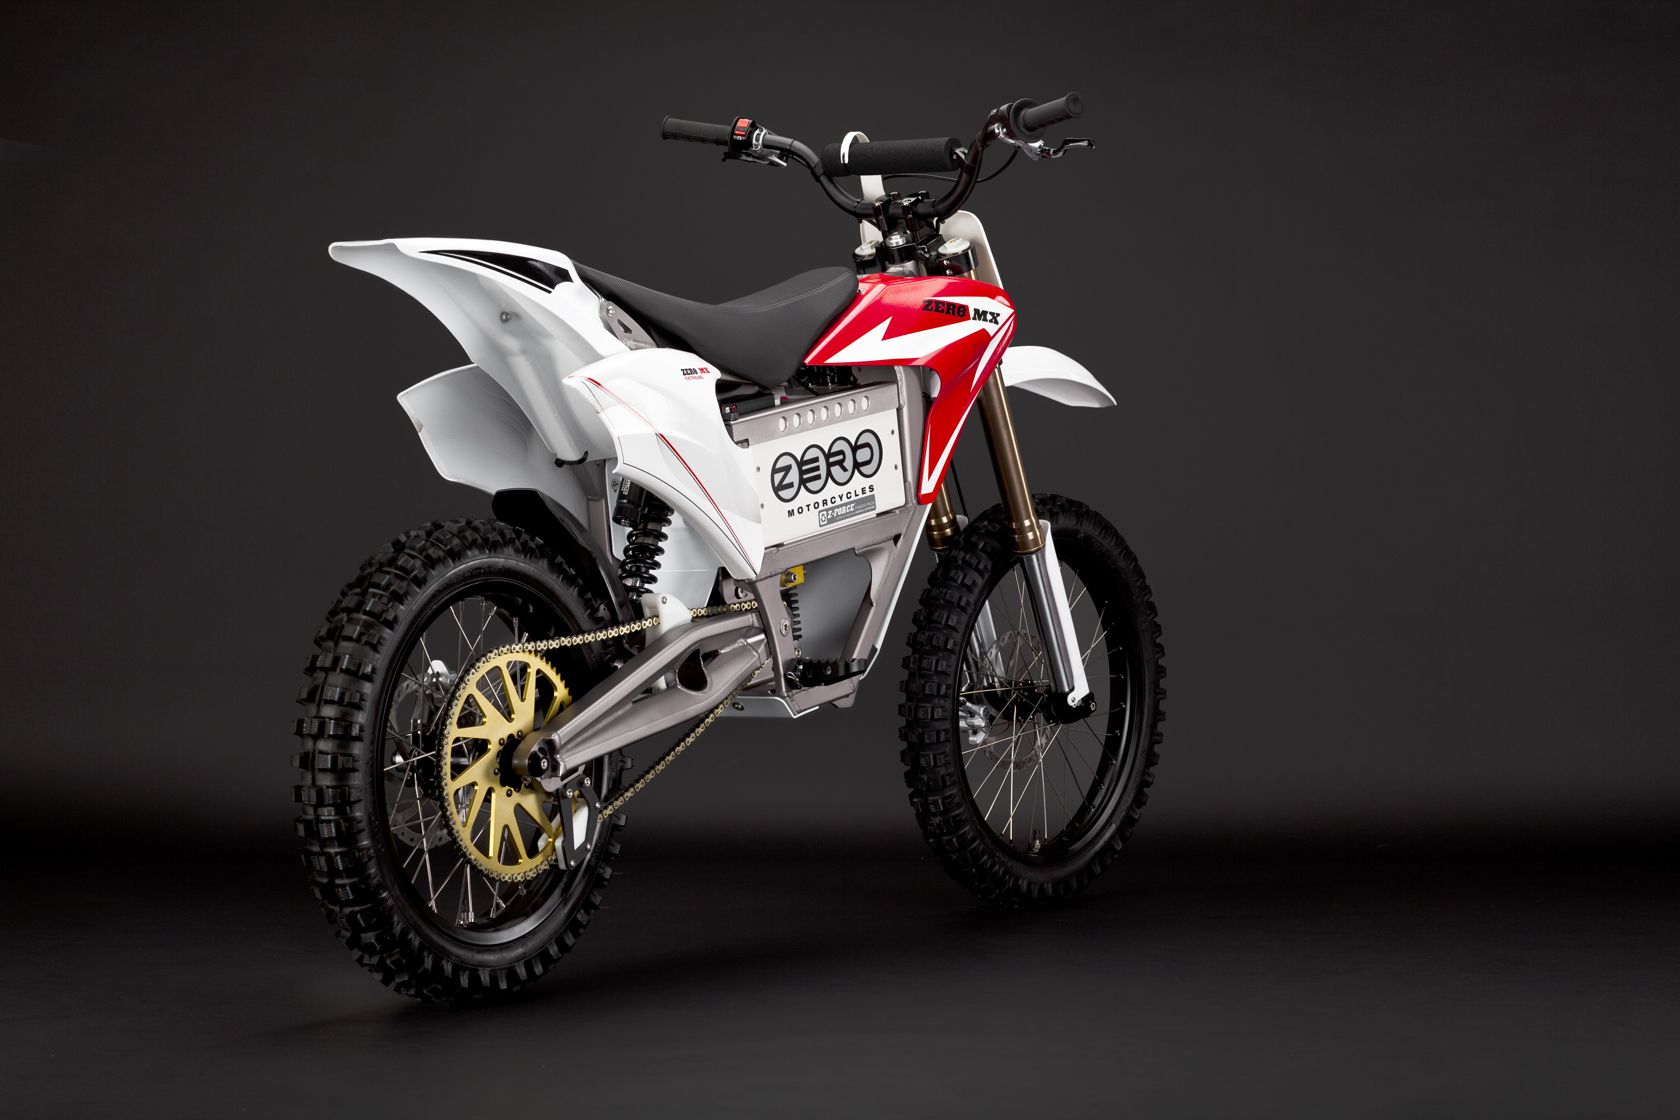 2010 Zero MX Electric Motorcycle: Red Angle Rear